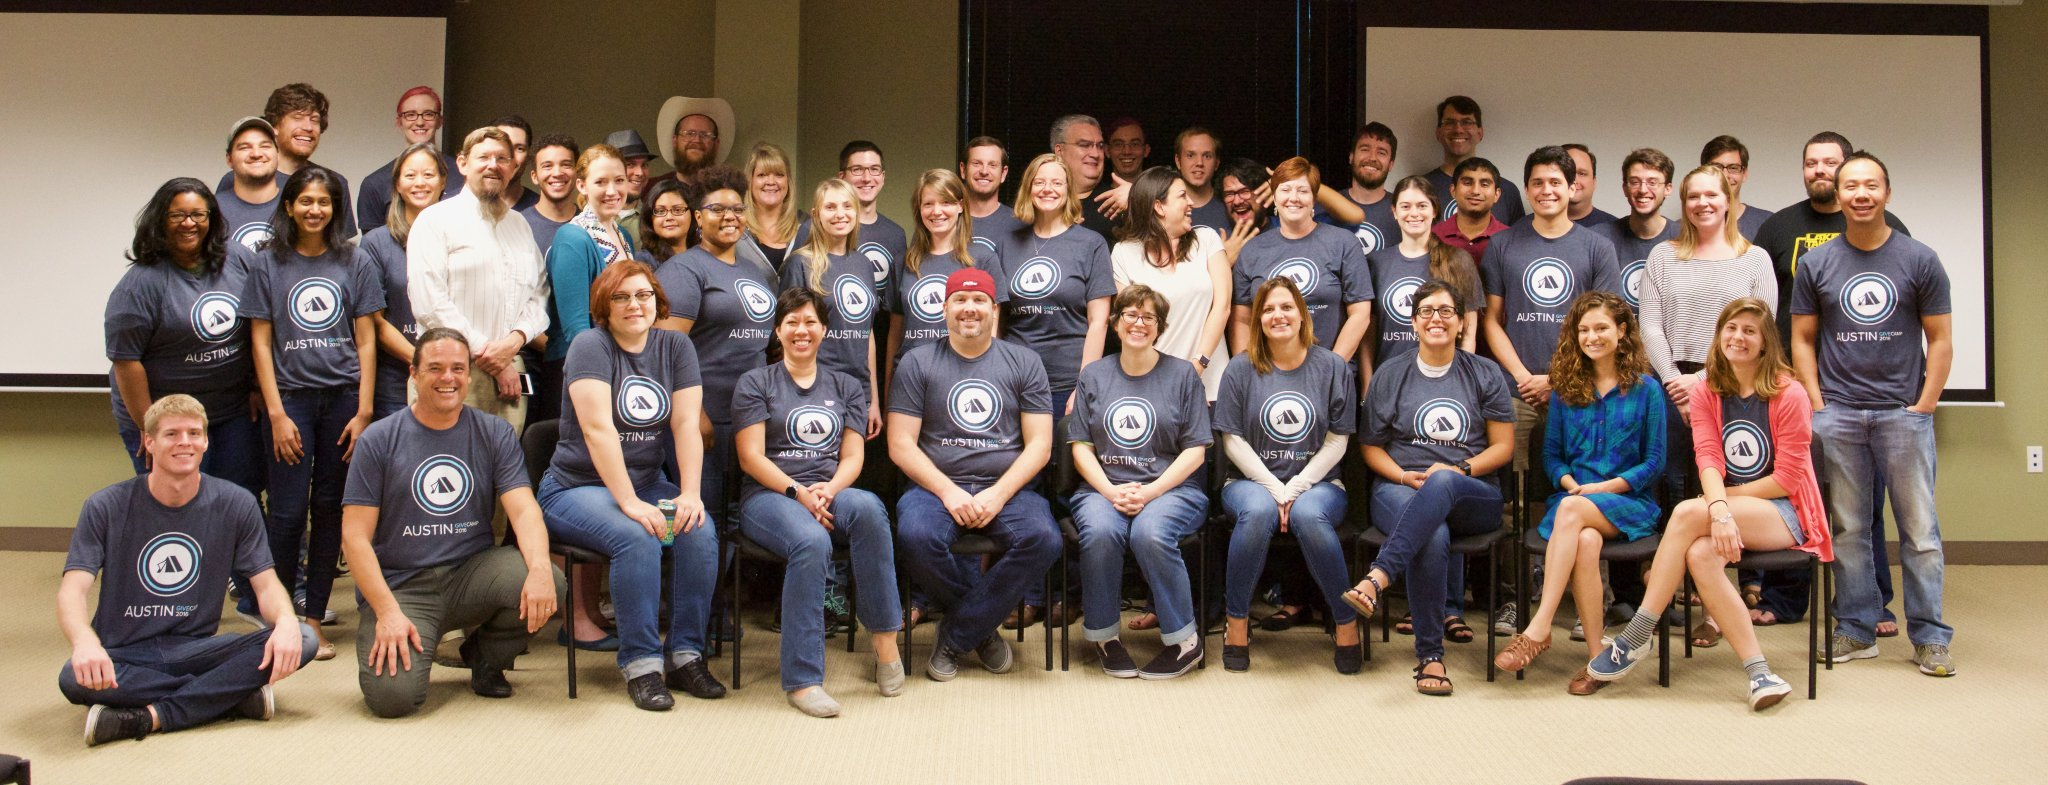 The whole group of volunteers and organizations. What a great group!